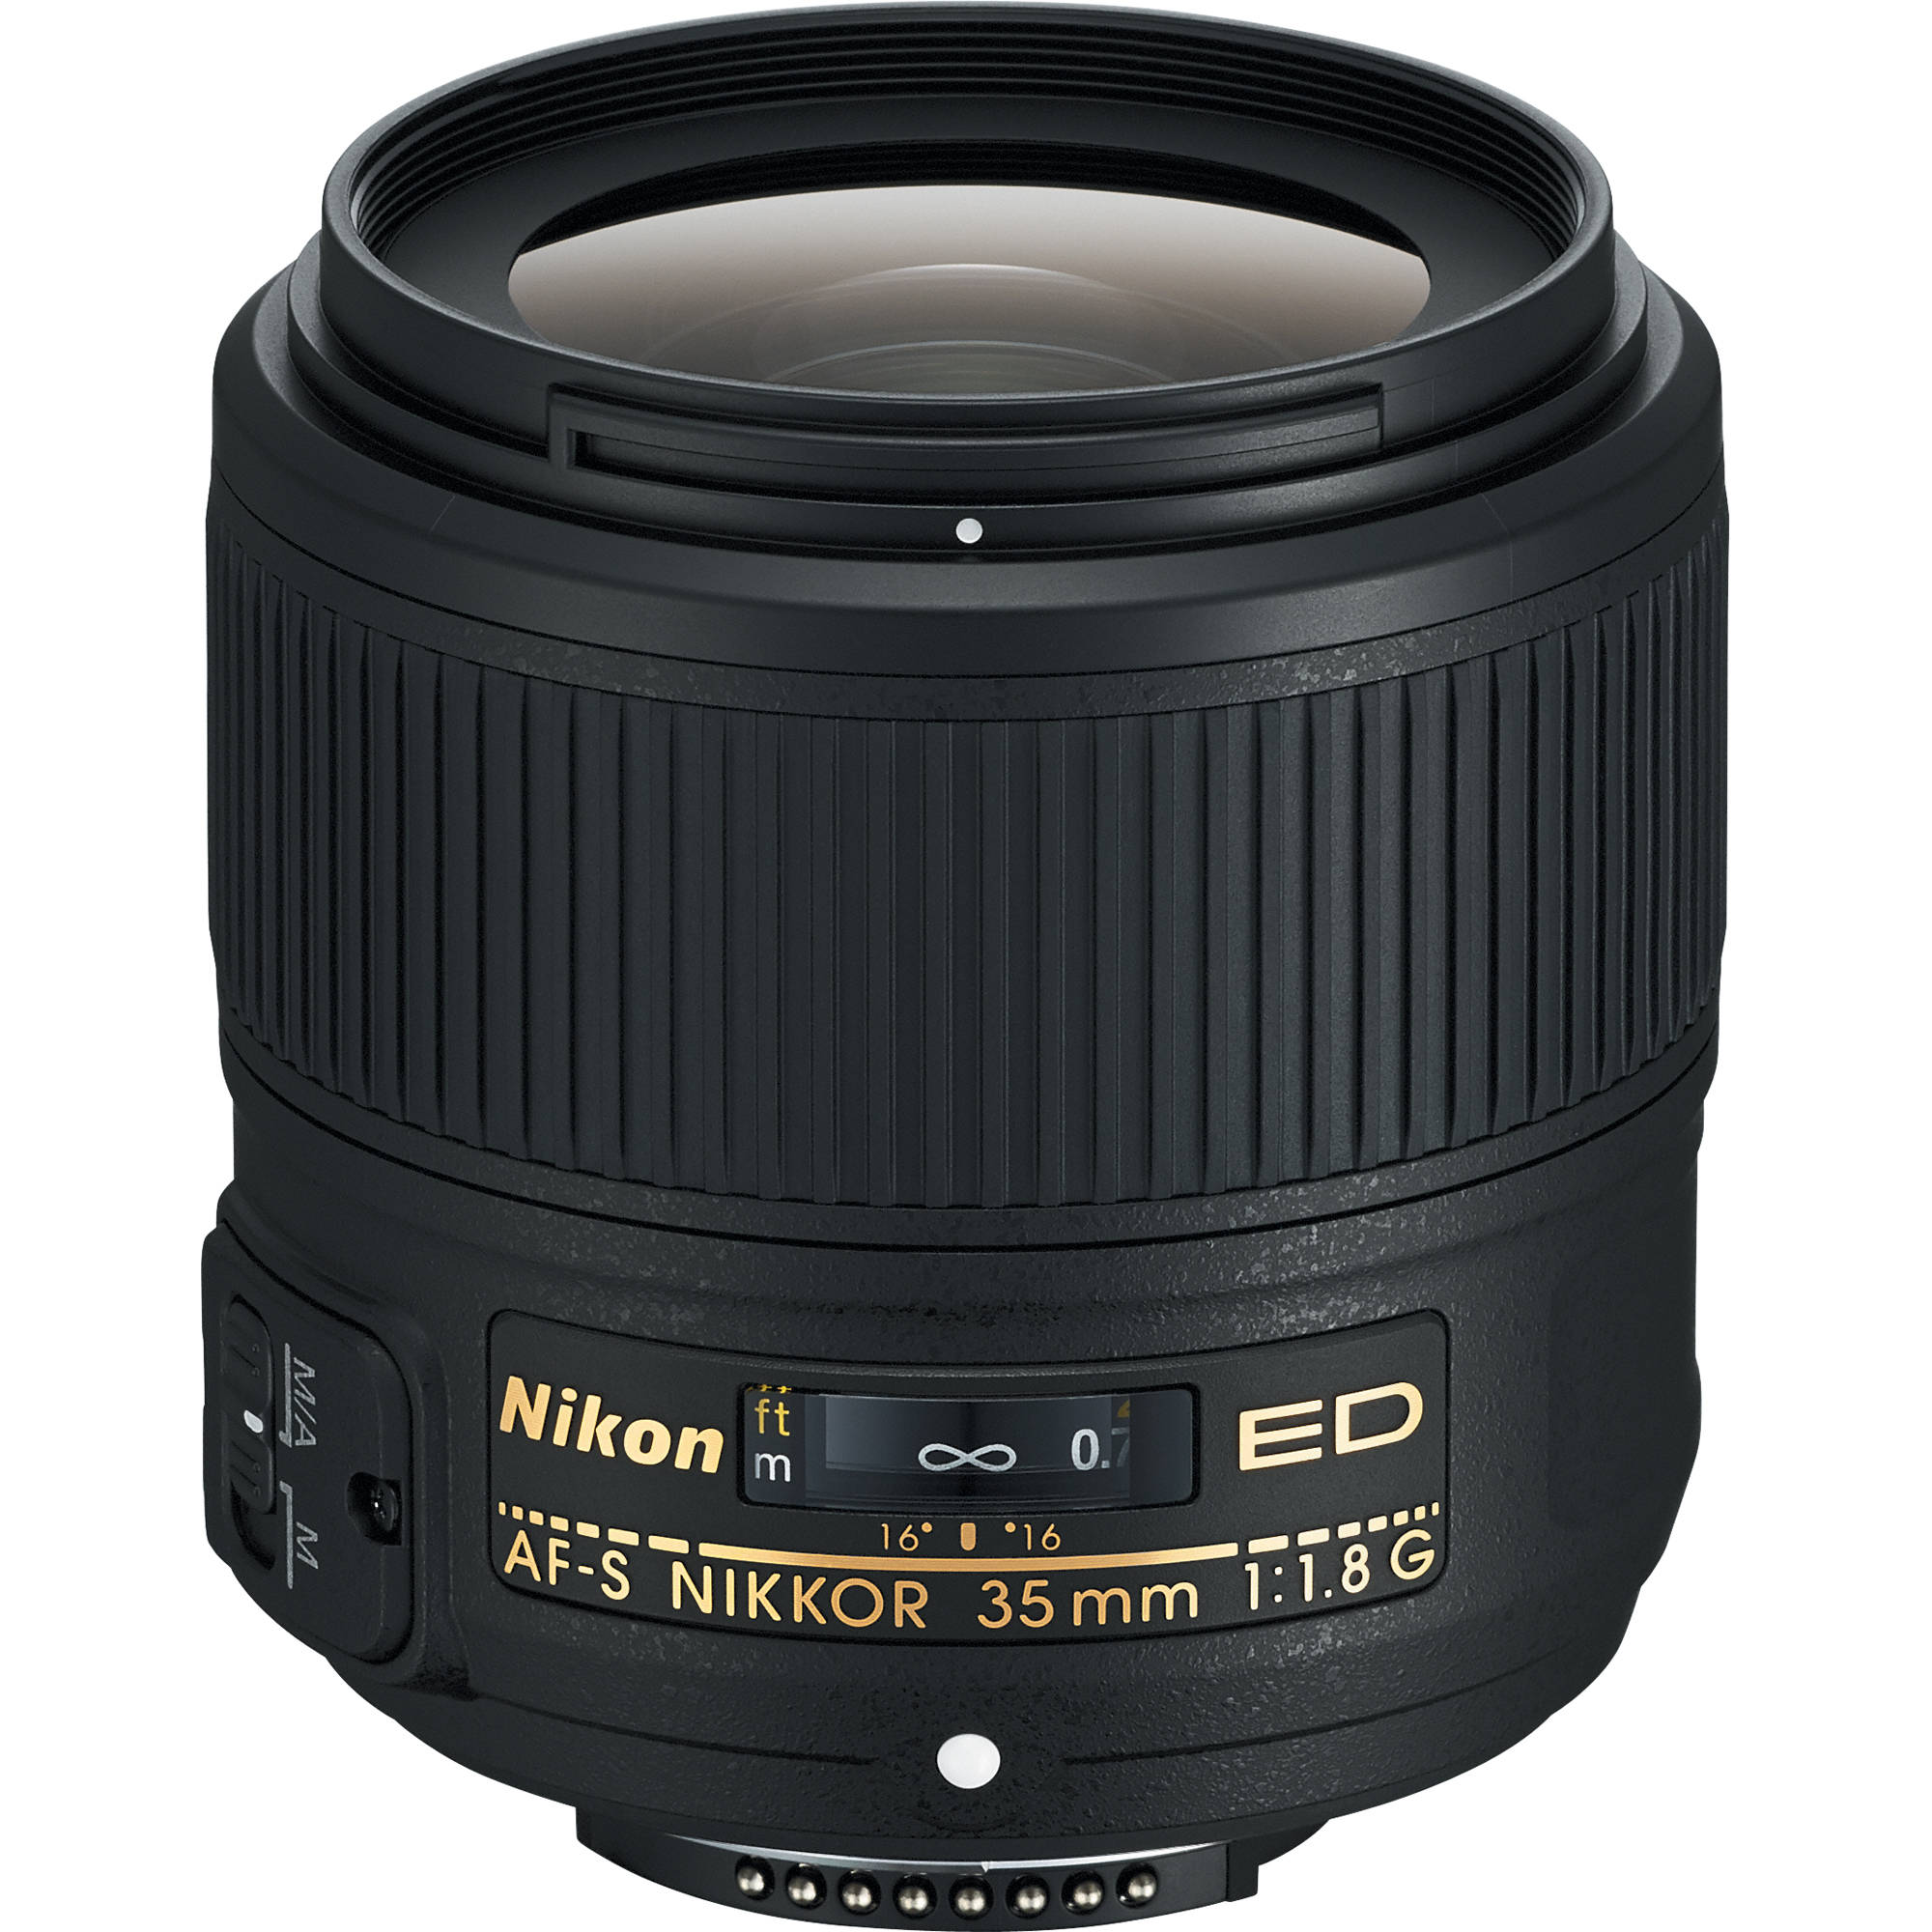 Nikon AF-S NIKKOR 35mm f/1.8G ED Lens 2215 B&H Photo Video